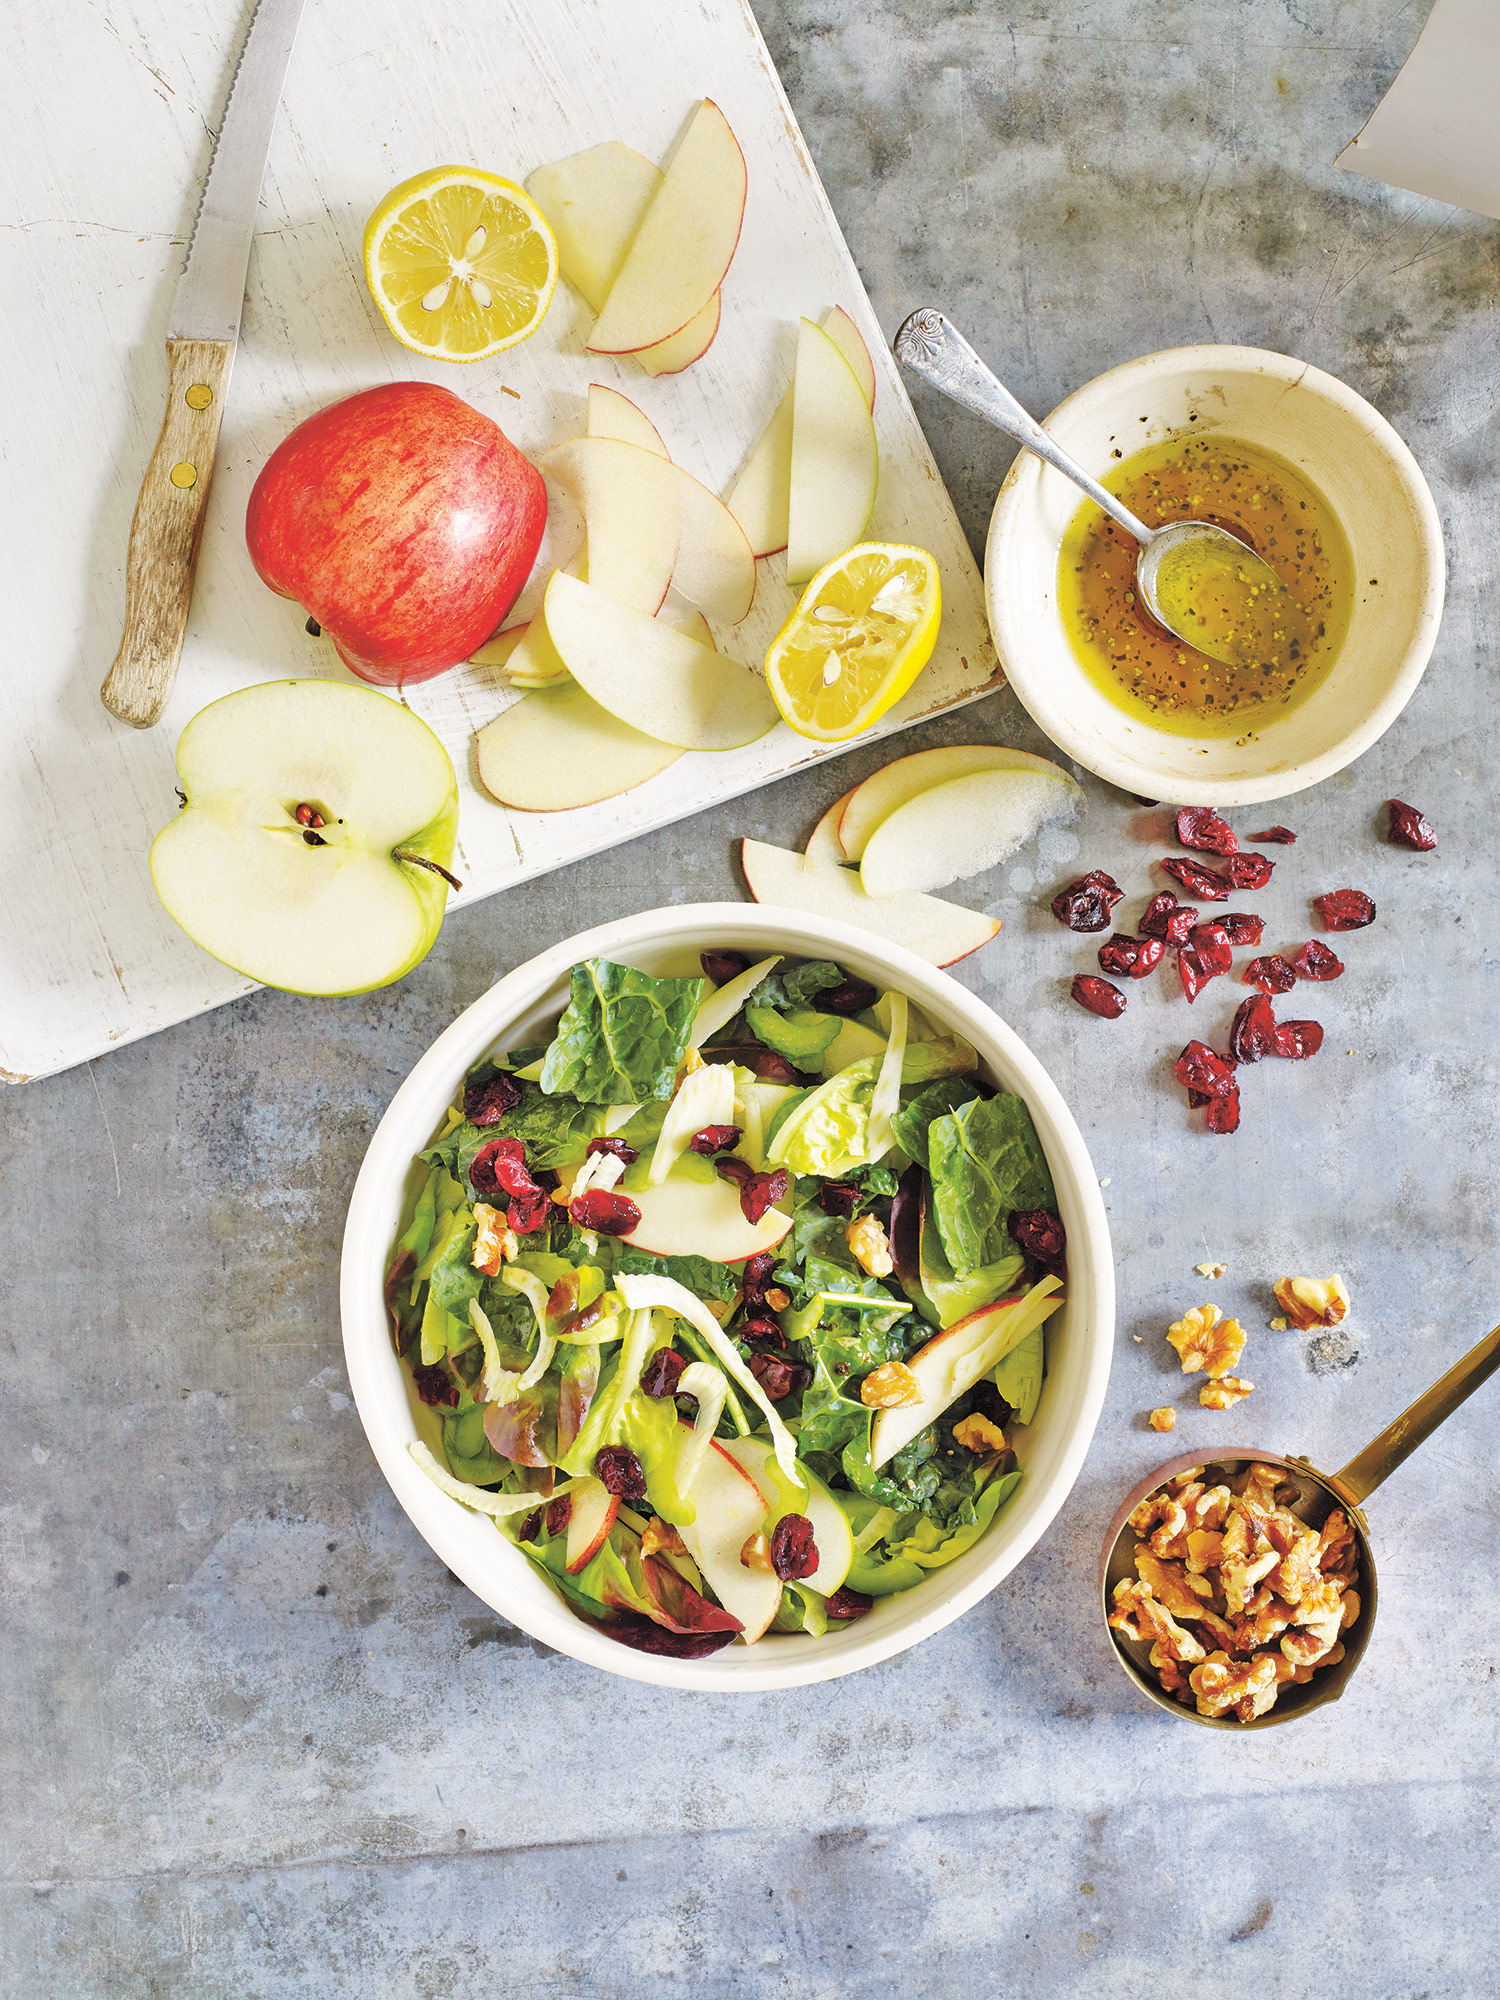 Tuscan Kale Apple Salad from Oprah's book Credit: Tina Rupp/Food, Health, and Happiness sent in by: Marlena Bittner